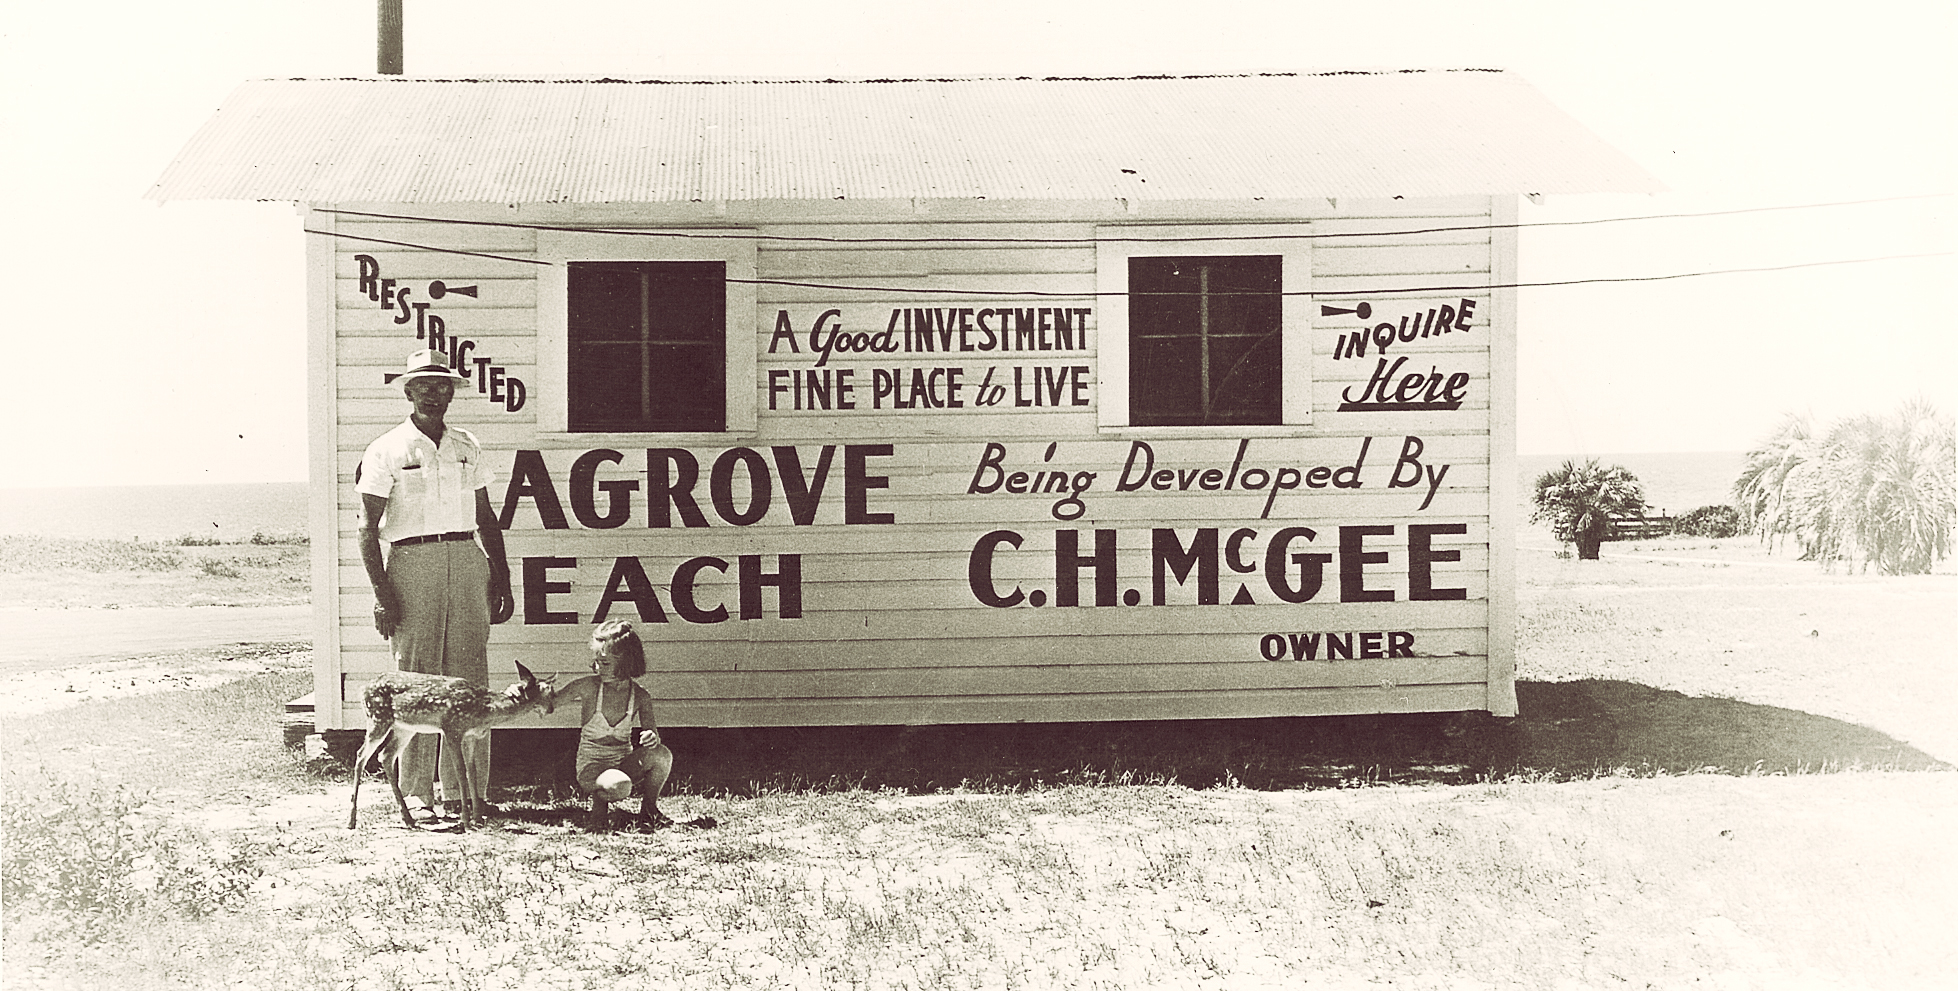 Cube McGee shaped Seagrove Beach into the vibrant, soulful place it is today. He was also a local celebrity, with his pet deer named Bambi.